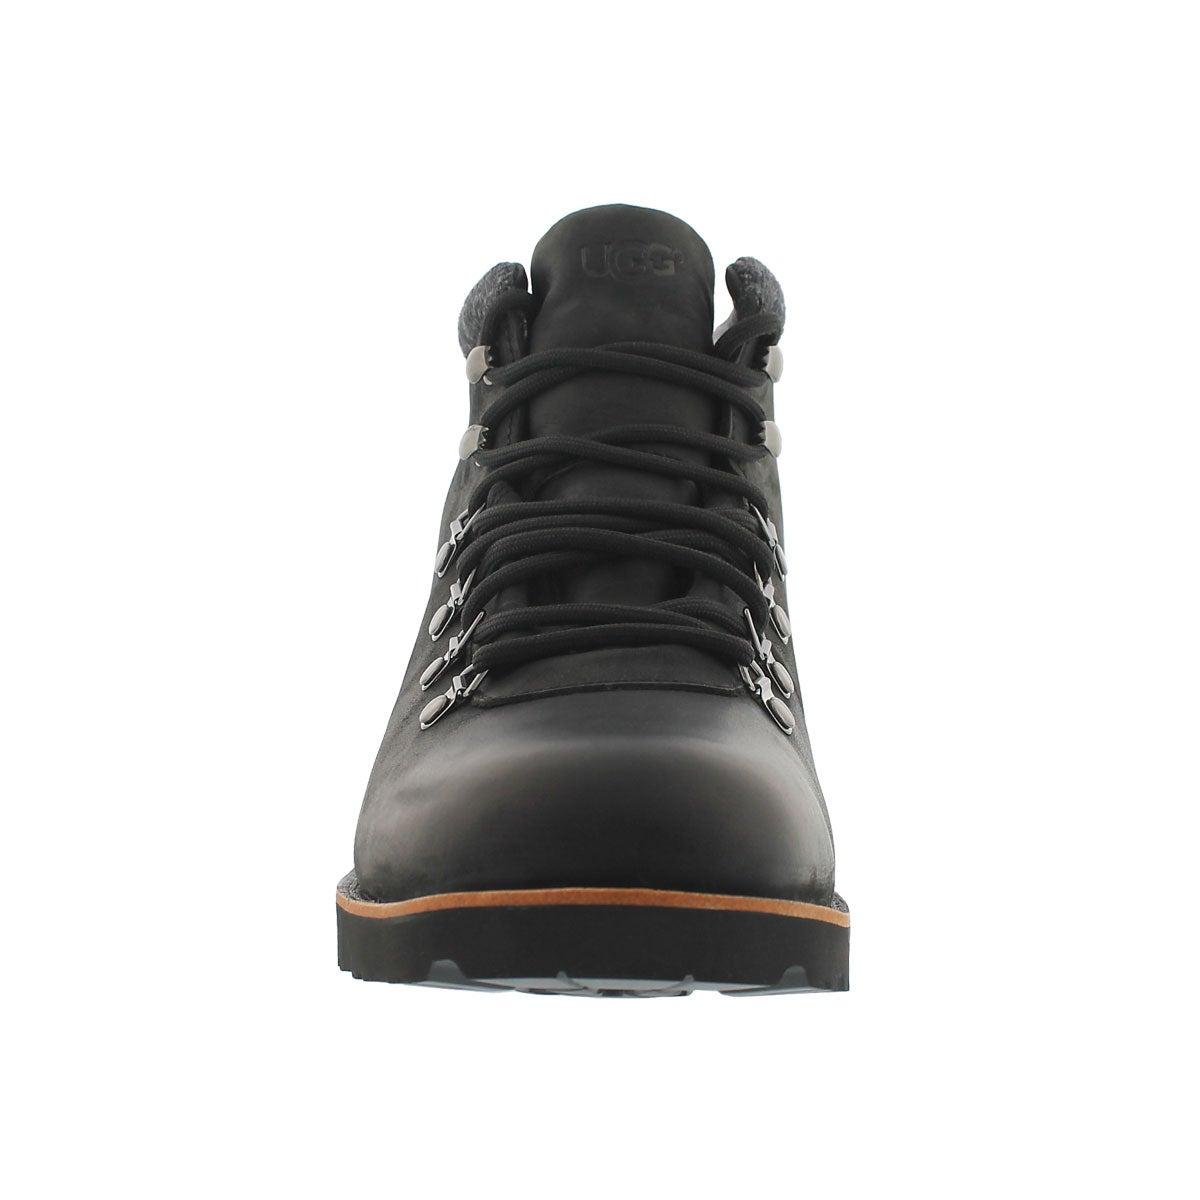 Mns Boysen blk lined ankle boot